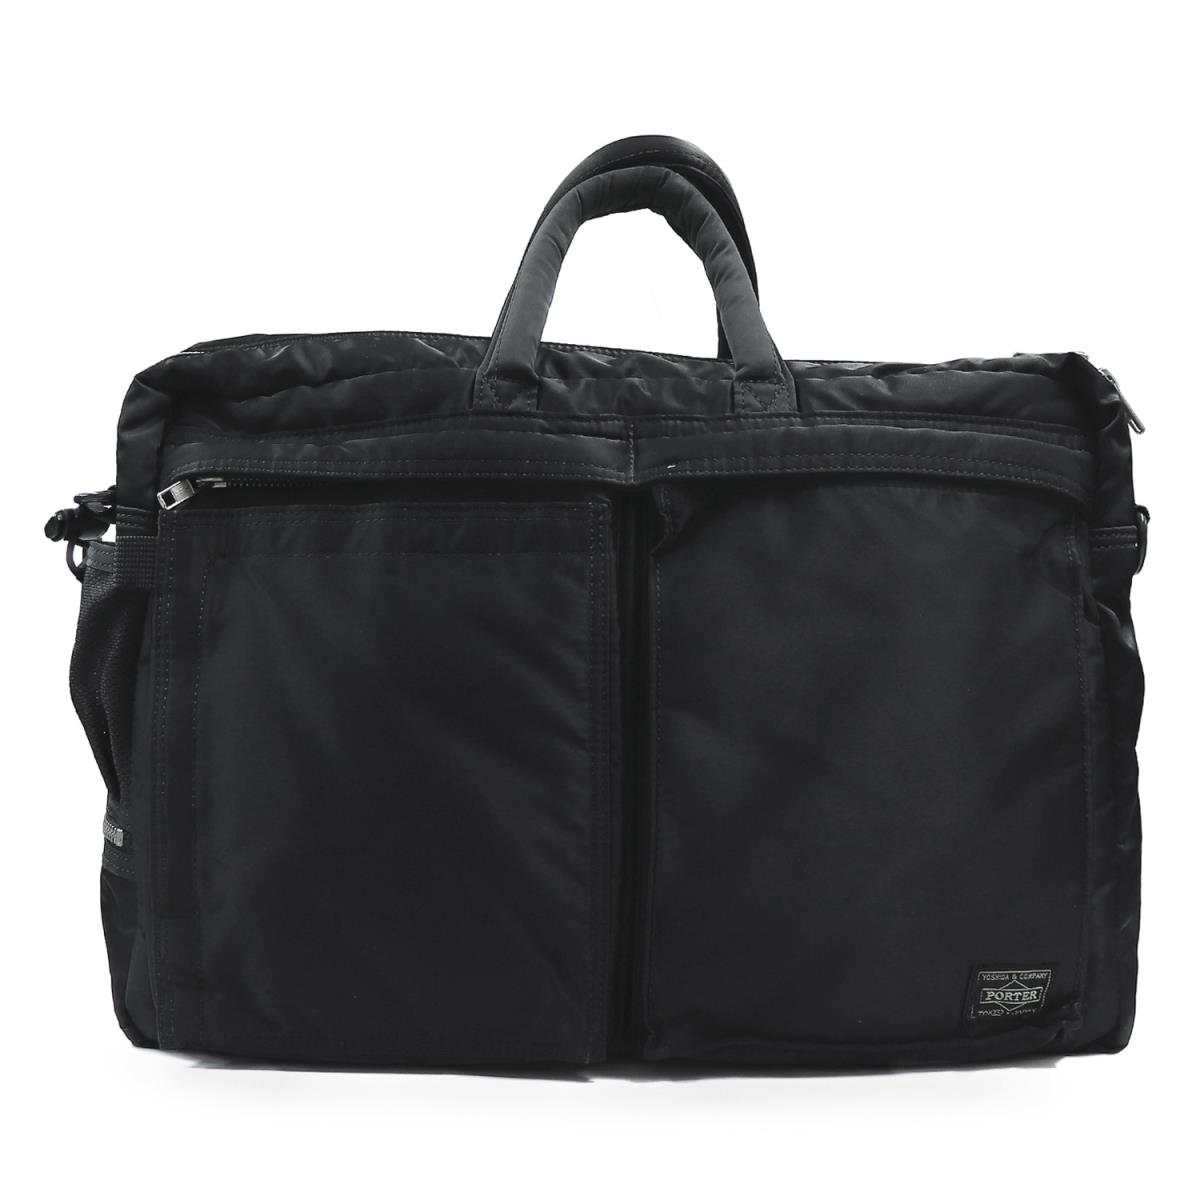 13635c607dfe BEEGLE by Boo-Bee  HEAD PORTER (head porter) tanker 2WAY briefcase (TANKER  2WAY BRIEFCASE) black